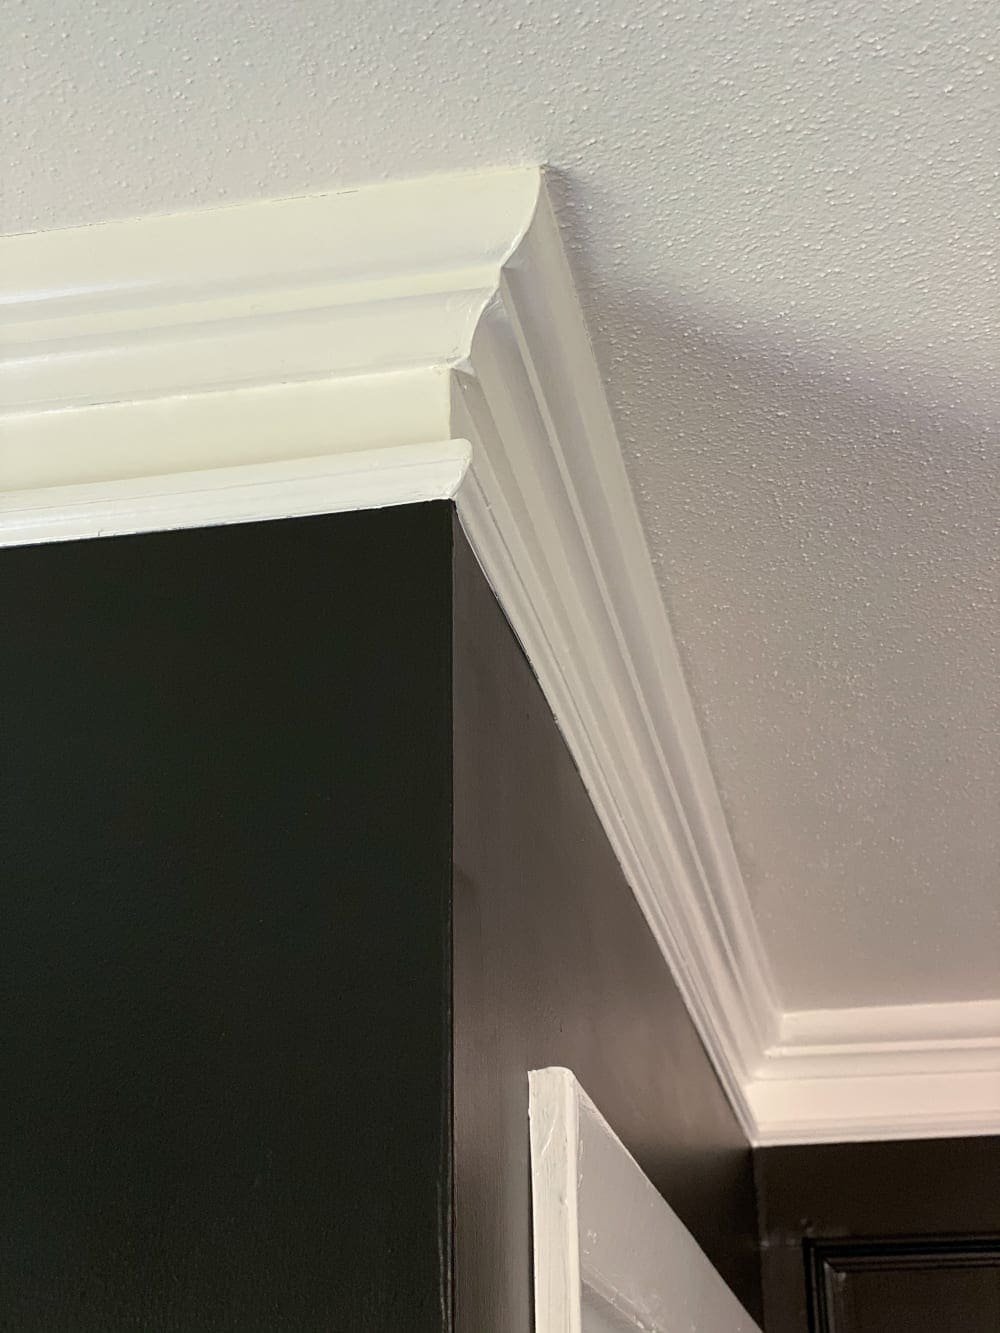 How to Quickly Beef Up Crown Molding and Baseboards   One easy trick to make thin crown molding and baseboards thicker and more stately for less than $1 per foot.